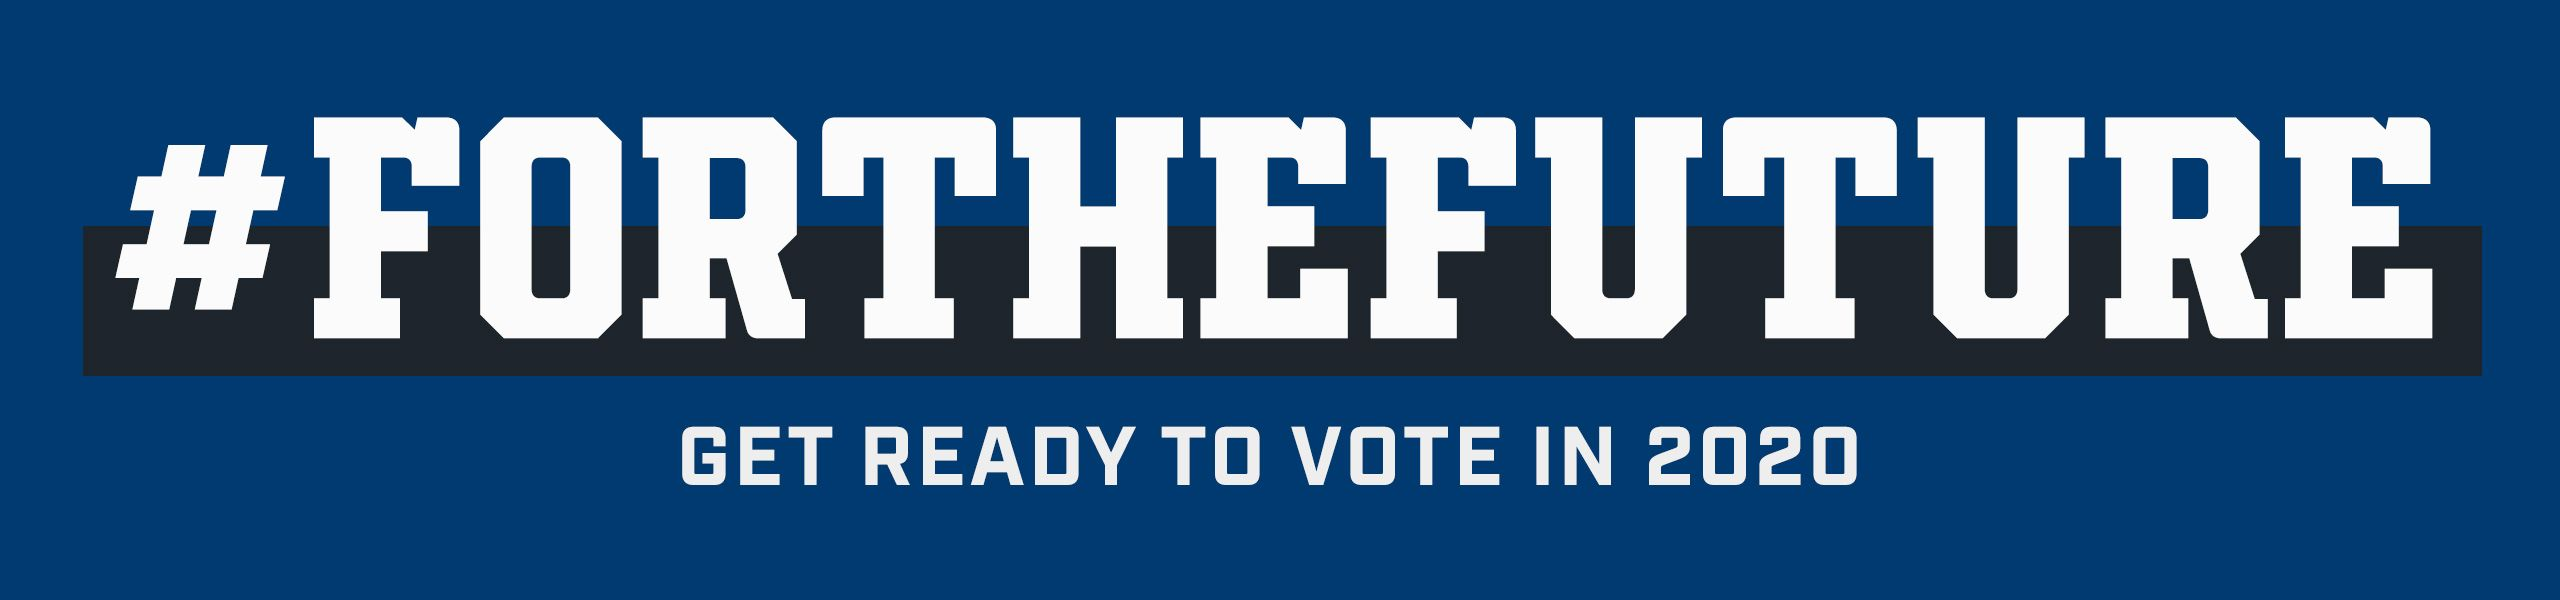 Indianapolis Colts For The Future:   #FORTHEFUTURE  Get Ready To Vote In 2020